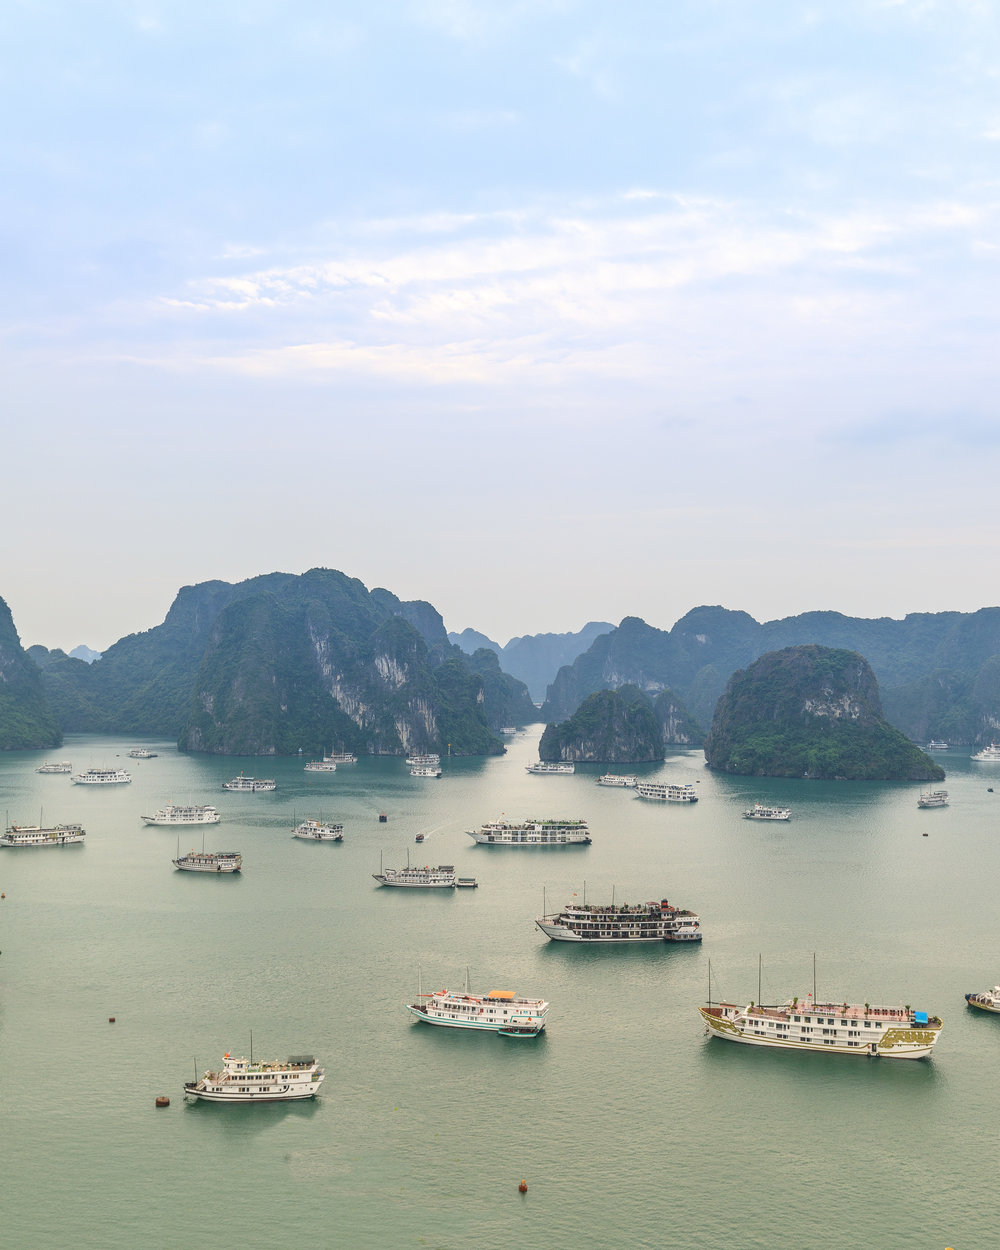 The views of Halong Bay from Ti Top Island - it is a pretty busy place